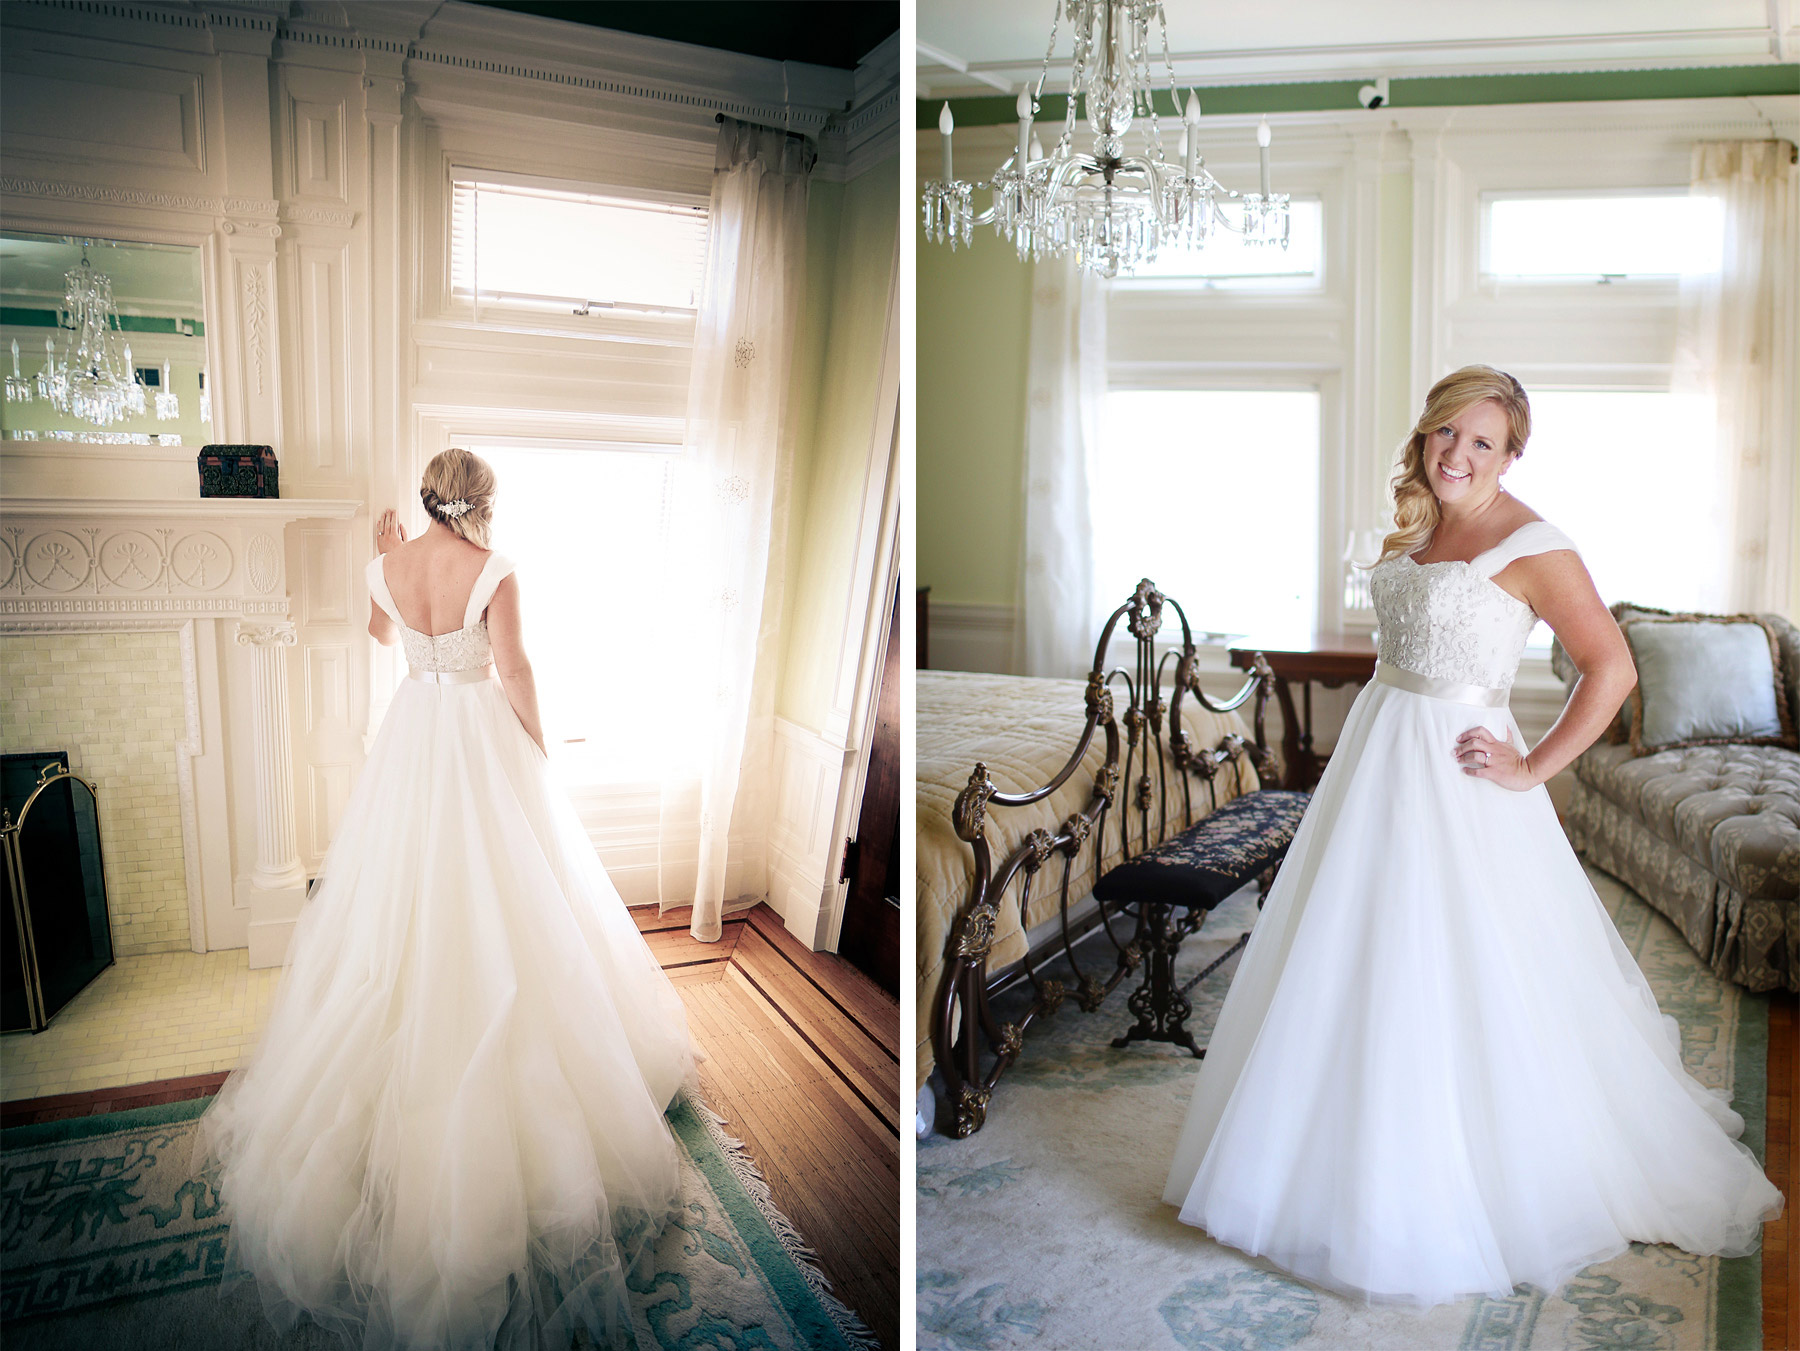 02-Minneapolis-Minnesota-Wedding-Photography-by-Vick-Photography-Van-Dusen-Mansion-Wedding-Dress-Taryn-&-Scott.jpg